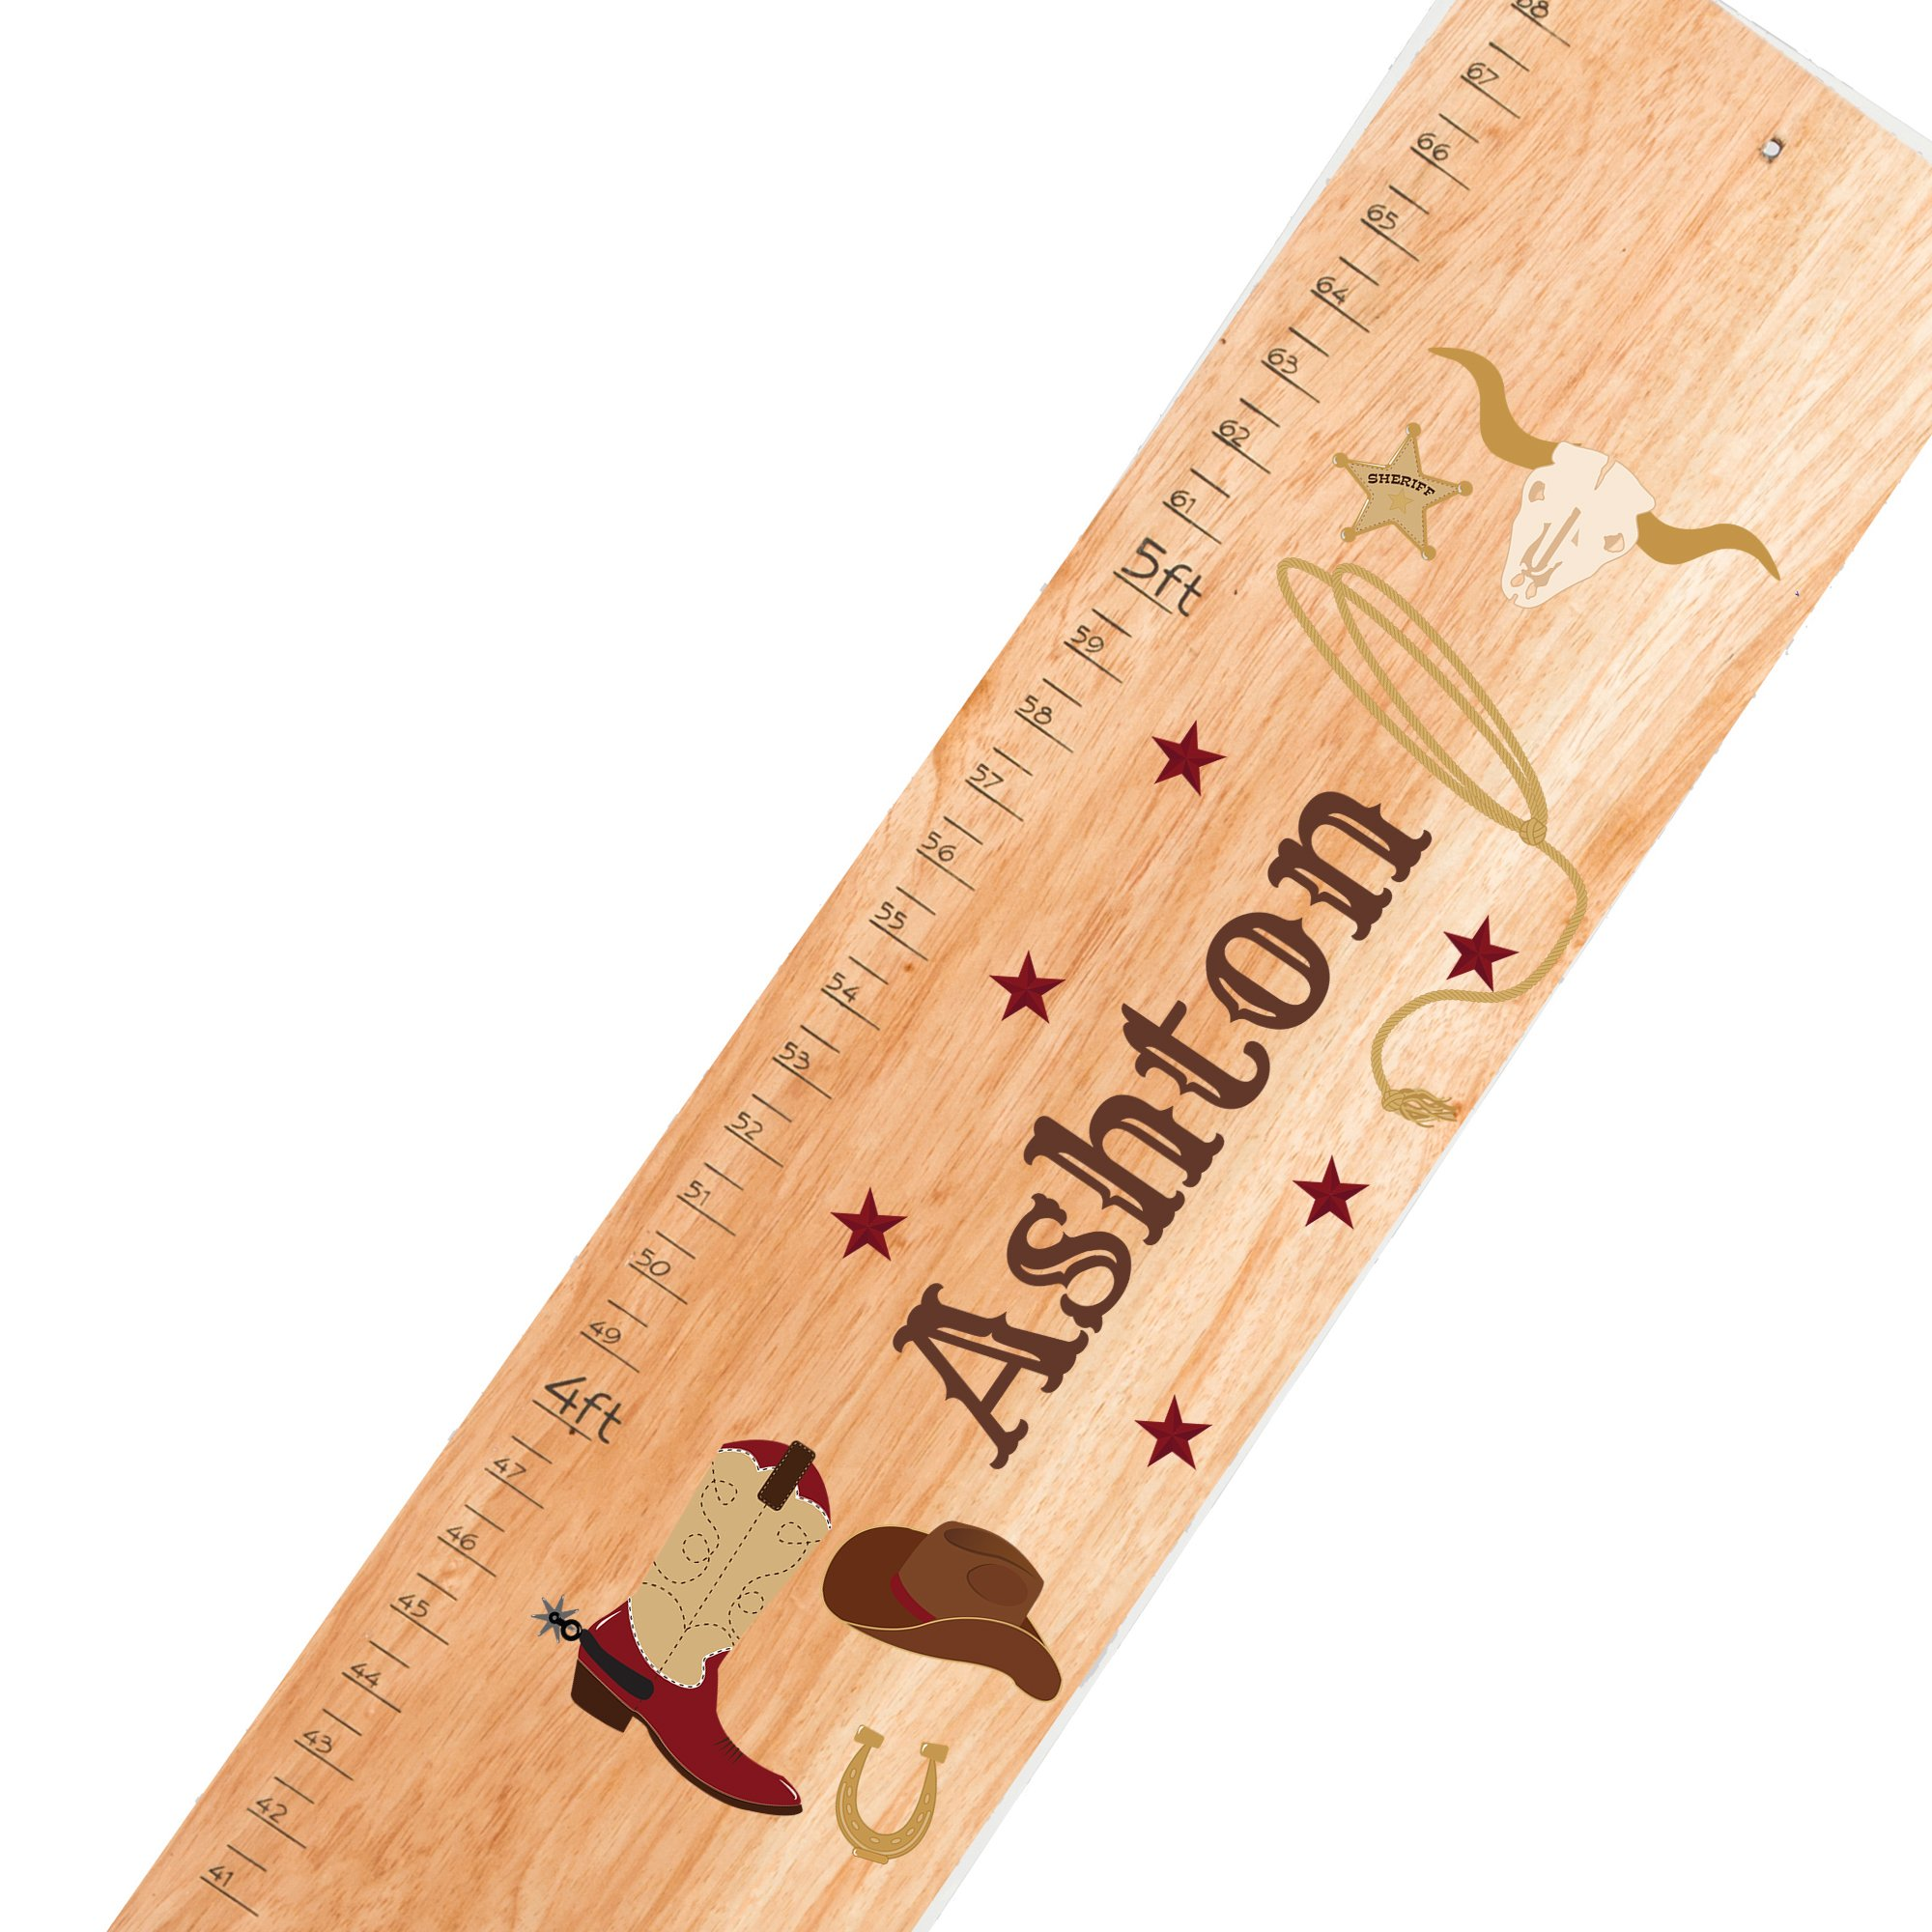 Personalized natural Wild West childrens wooden growth chart